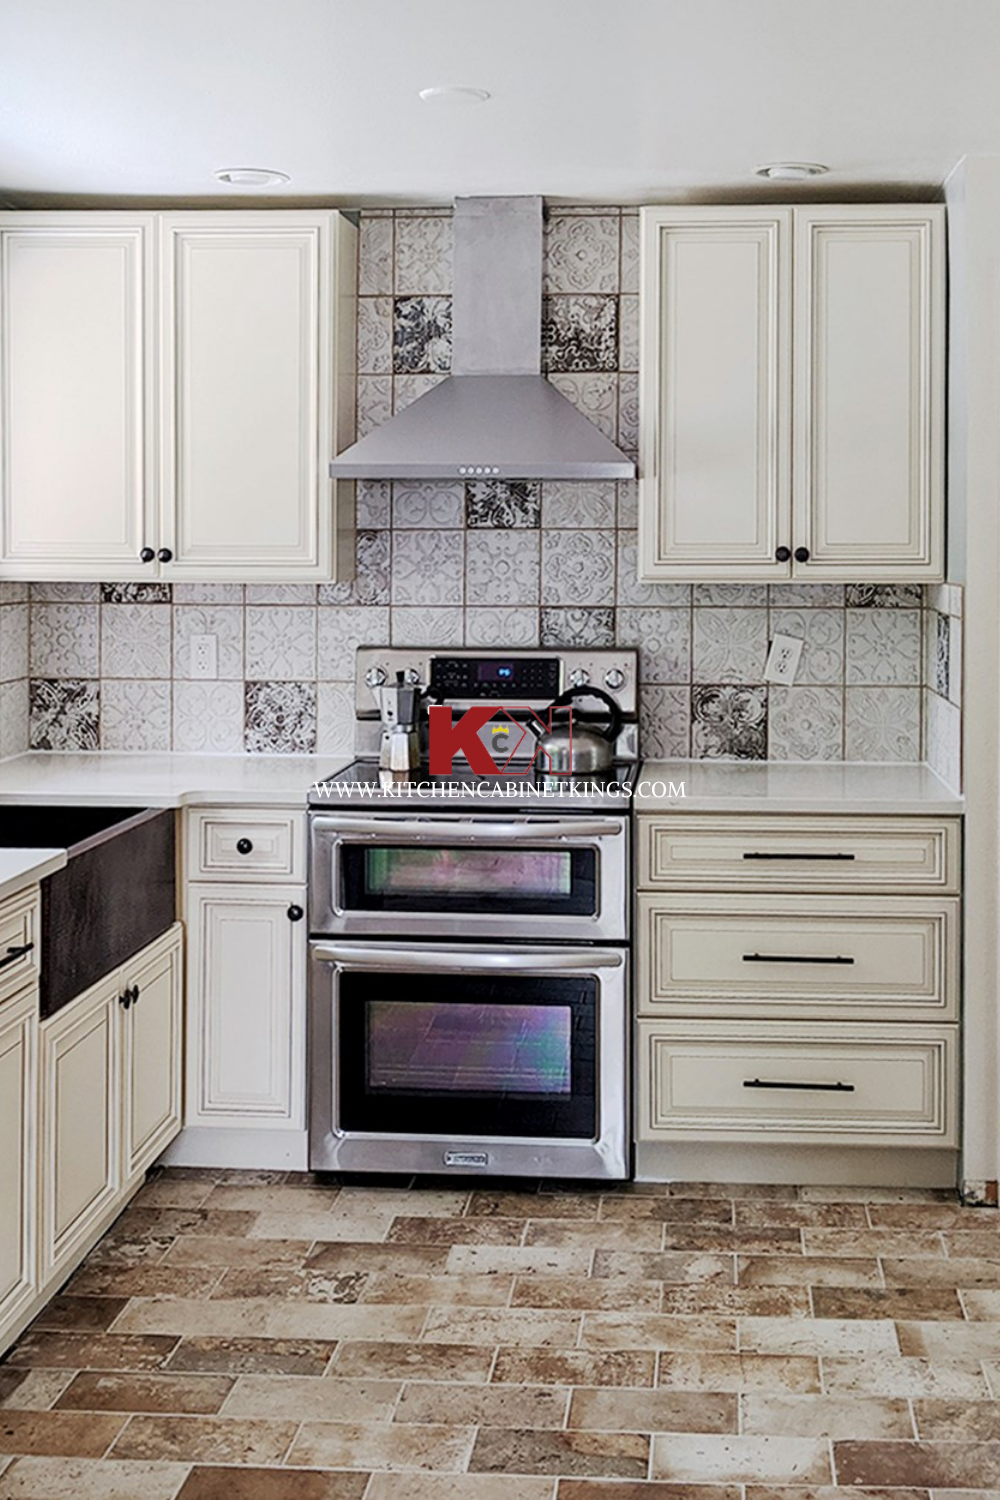 Buy Pearl Rta Kitchen Cabinets Online In 2021 Assembled Kitchen Cabinets Online Kitchen Cabinets Kitchen Cabinets